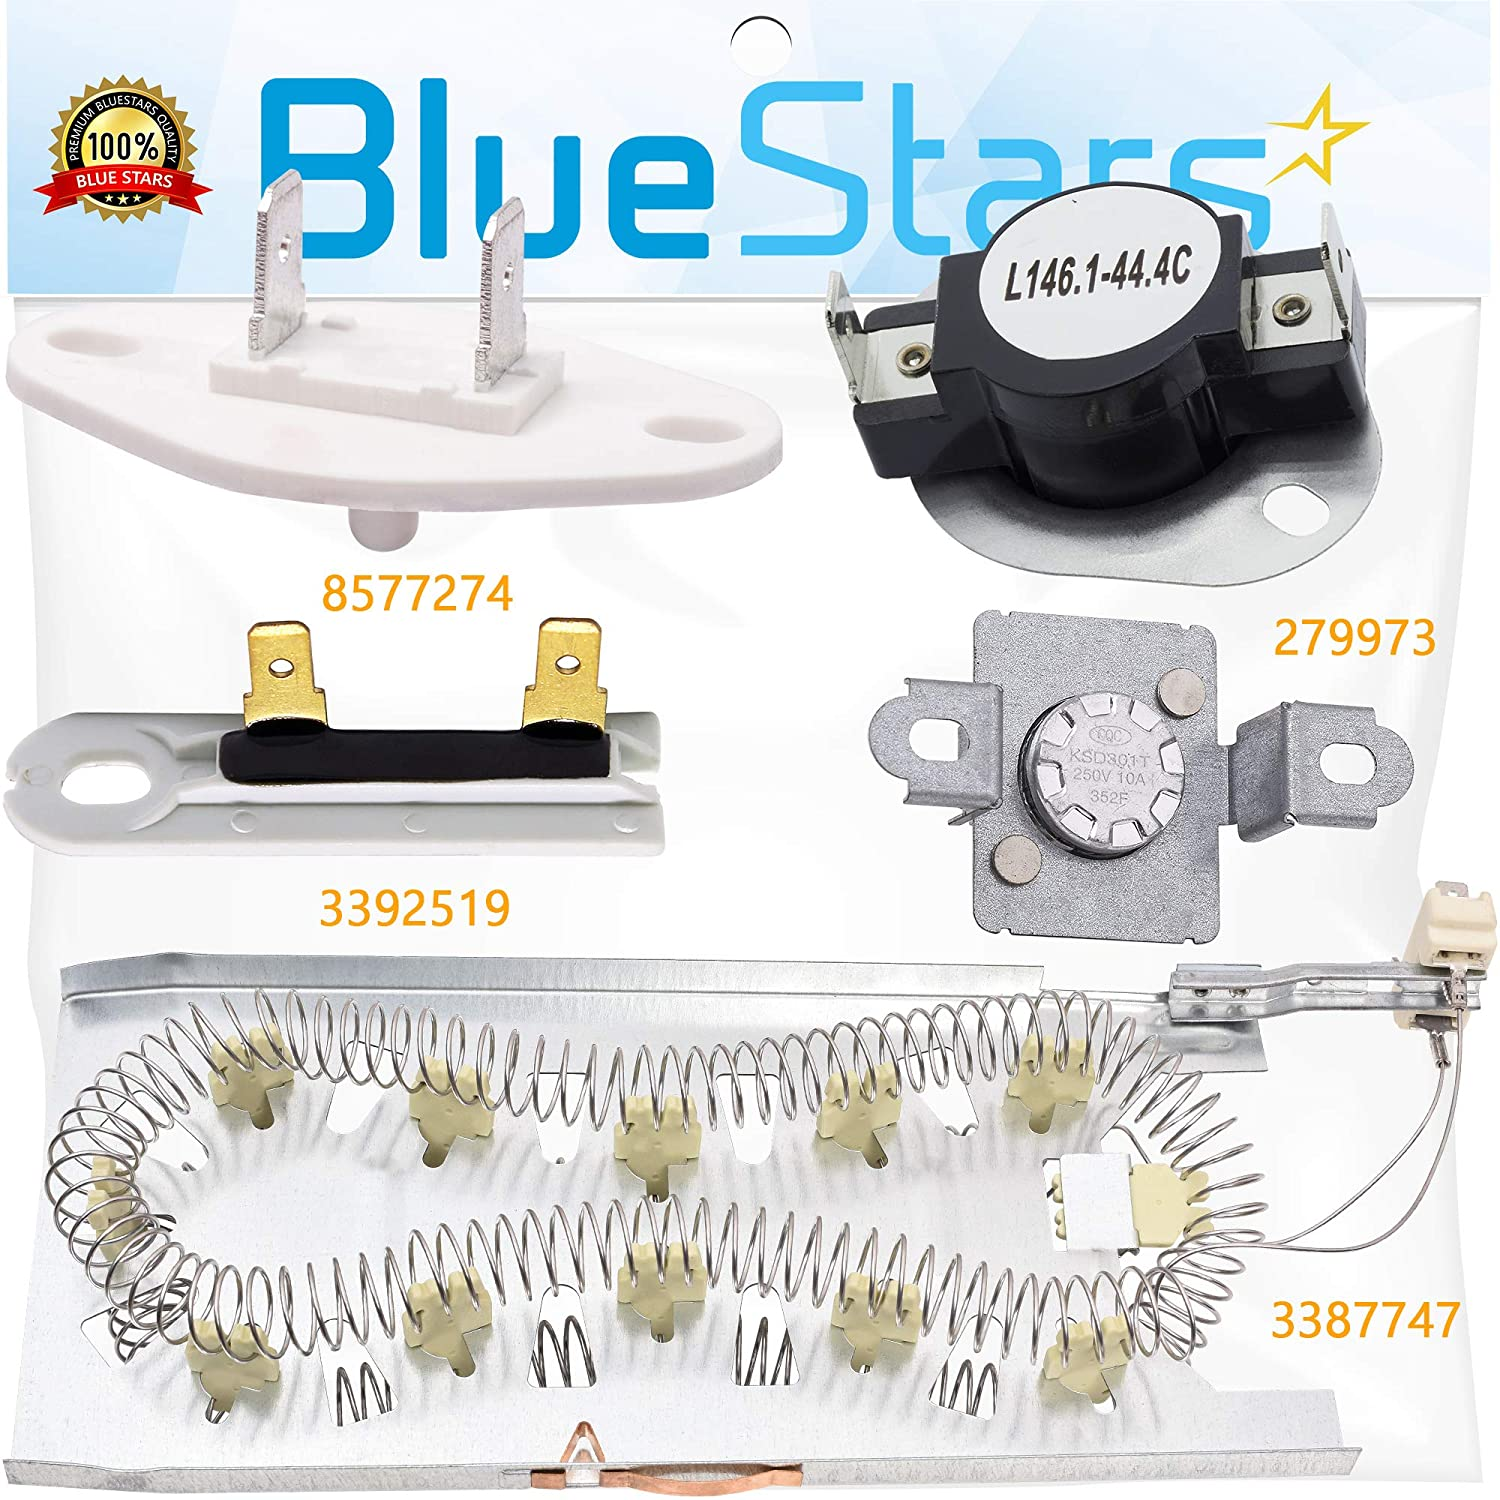 3387747 & 279973 & 3392519 & 8577274 Dryer Heating Element and Thermal Cut-off Fuse Kit Replacement by Blue Stars – Exact Fit For Whirlpool & Kenmore Dryers